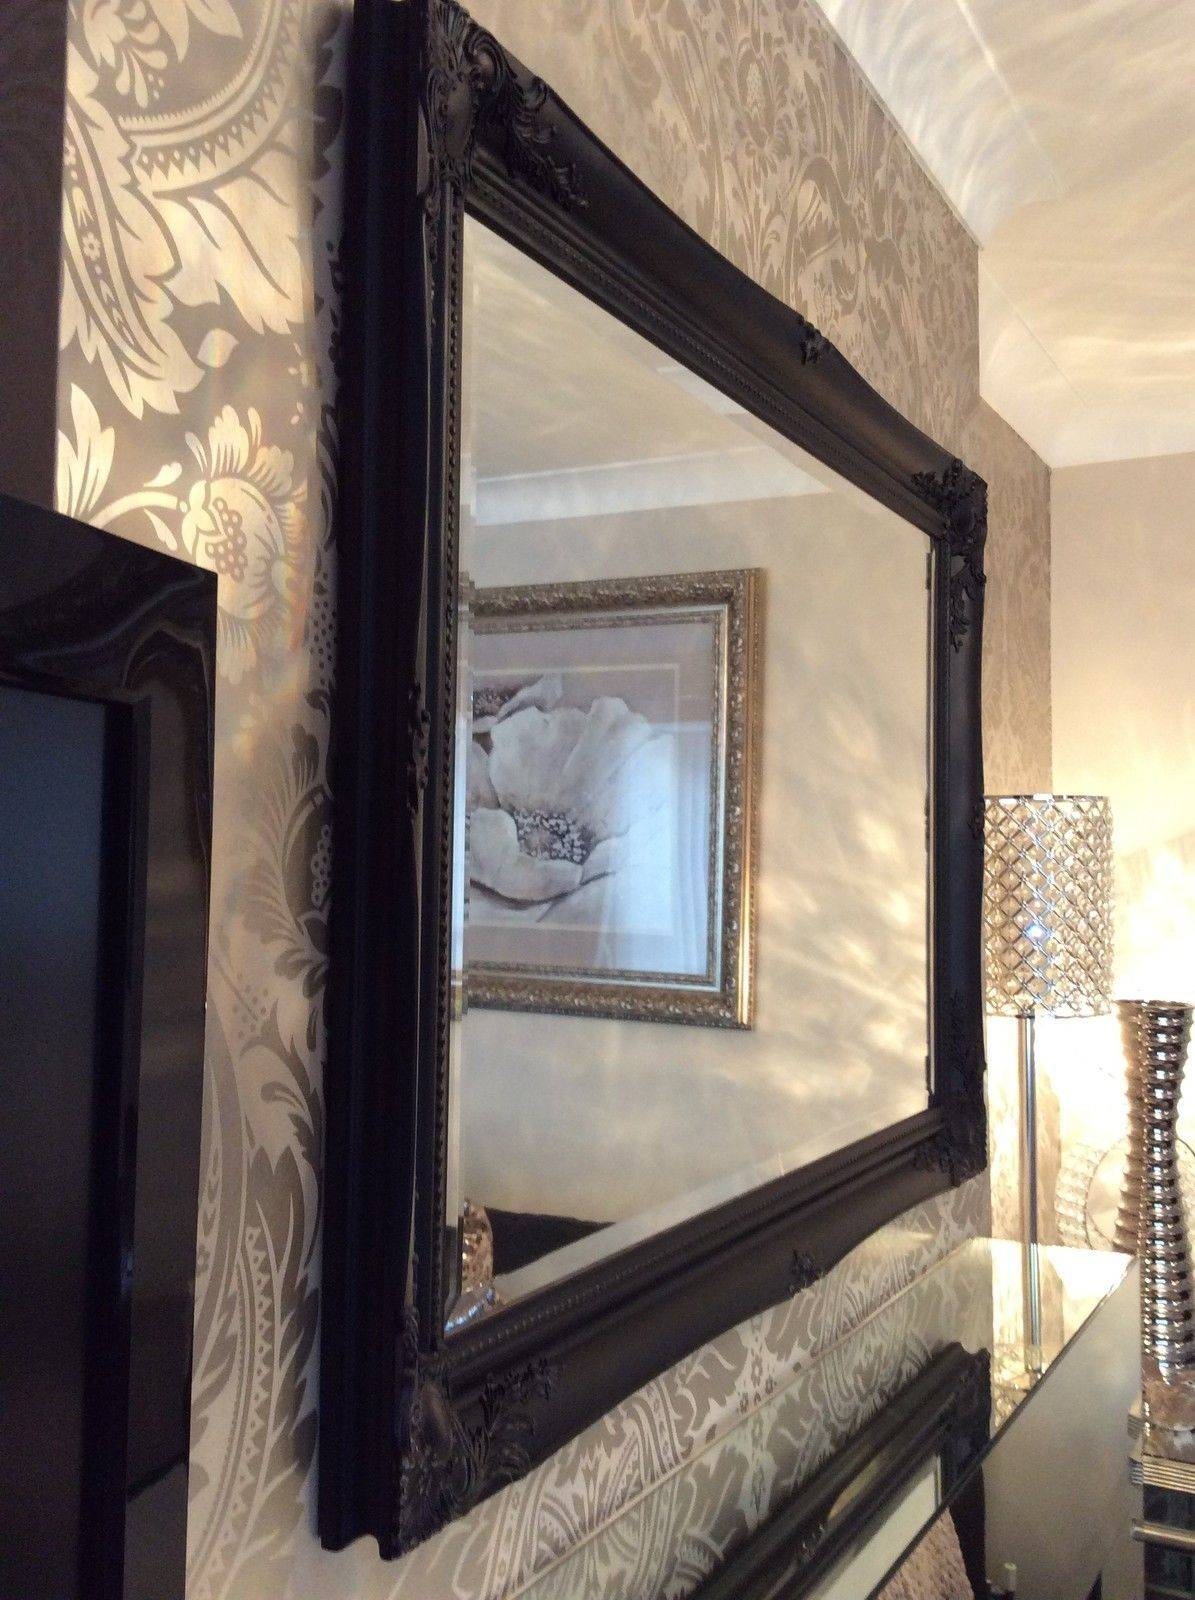 Black Shabby Chic Framed Ornate Overmantle Wall Mirror - Range Of with regard to Large Black Mirrors (Image 10 of 15)